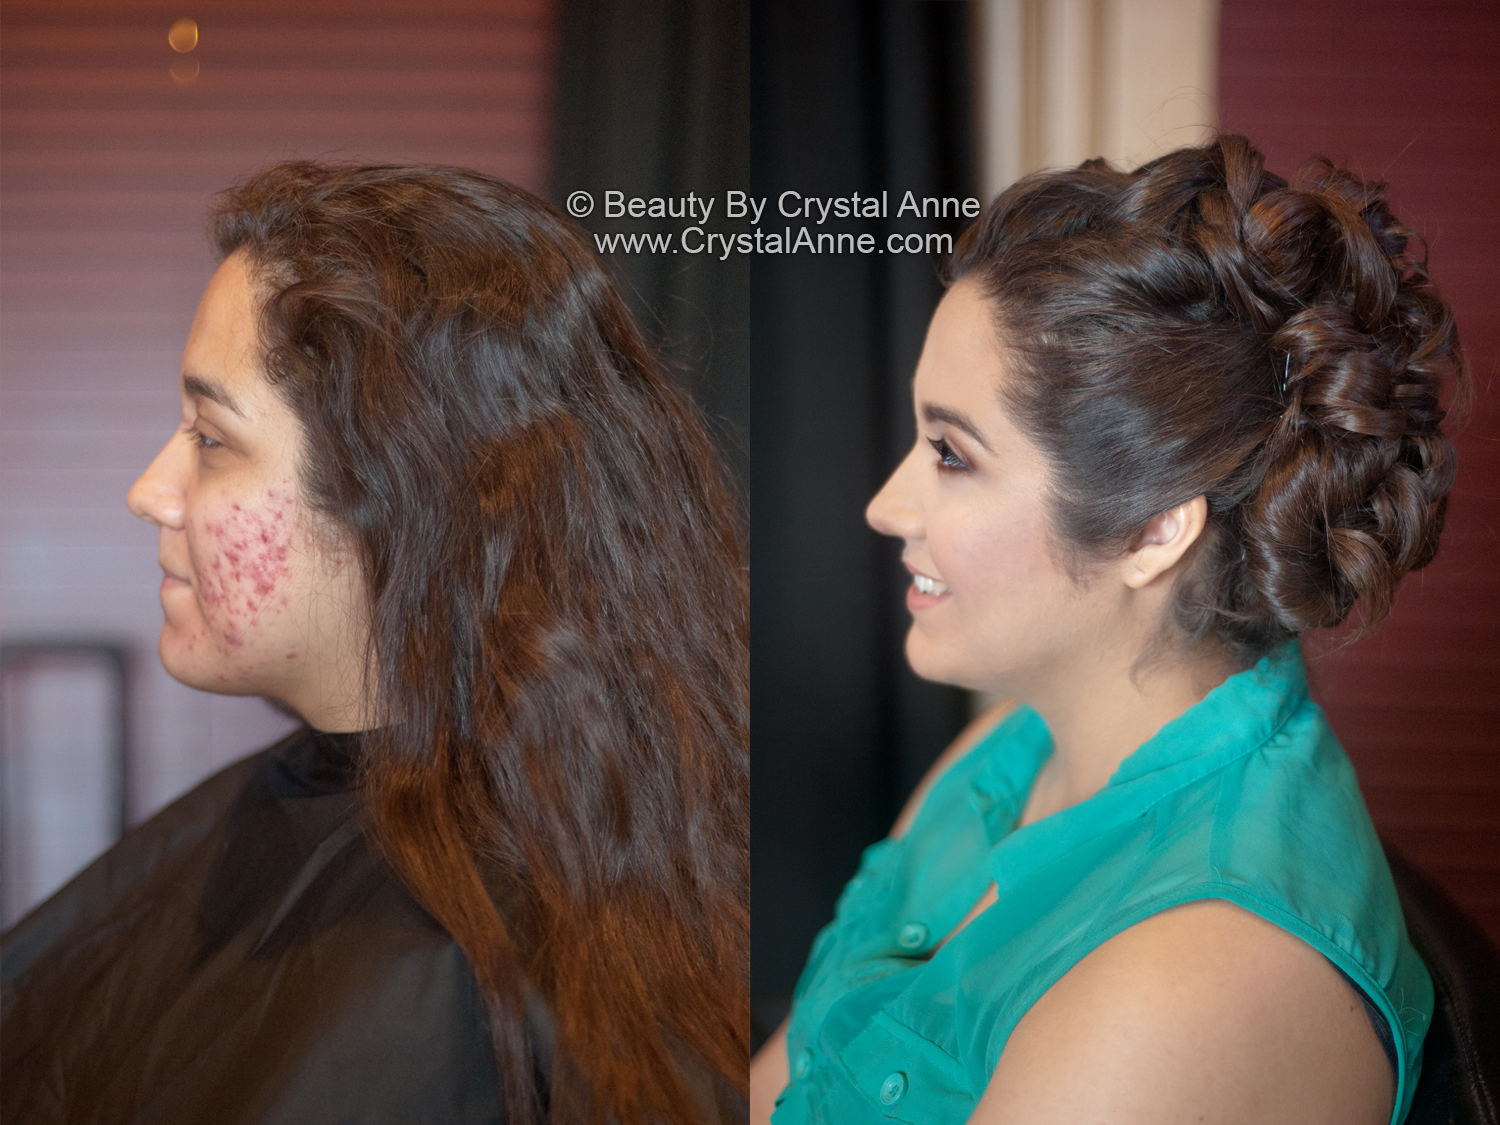 Airbrush Makeup For Acne